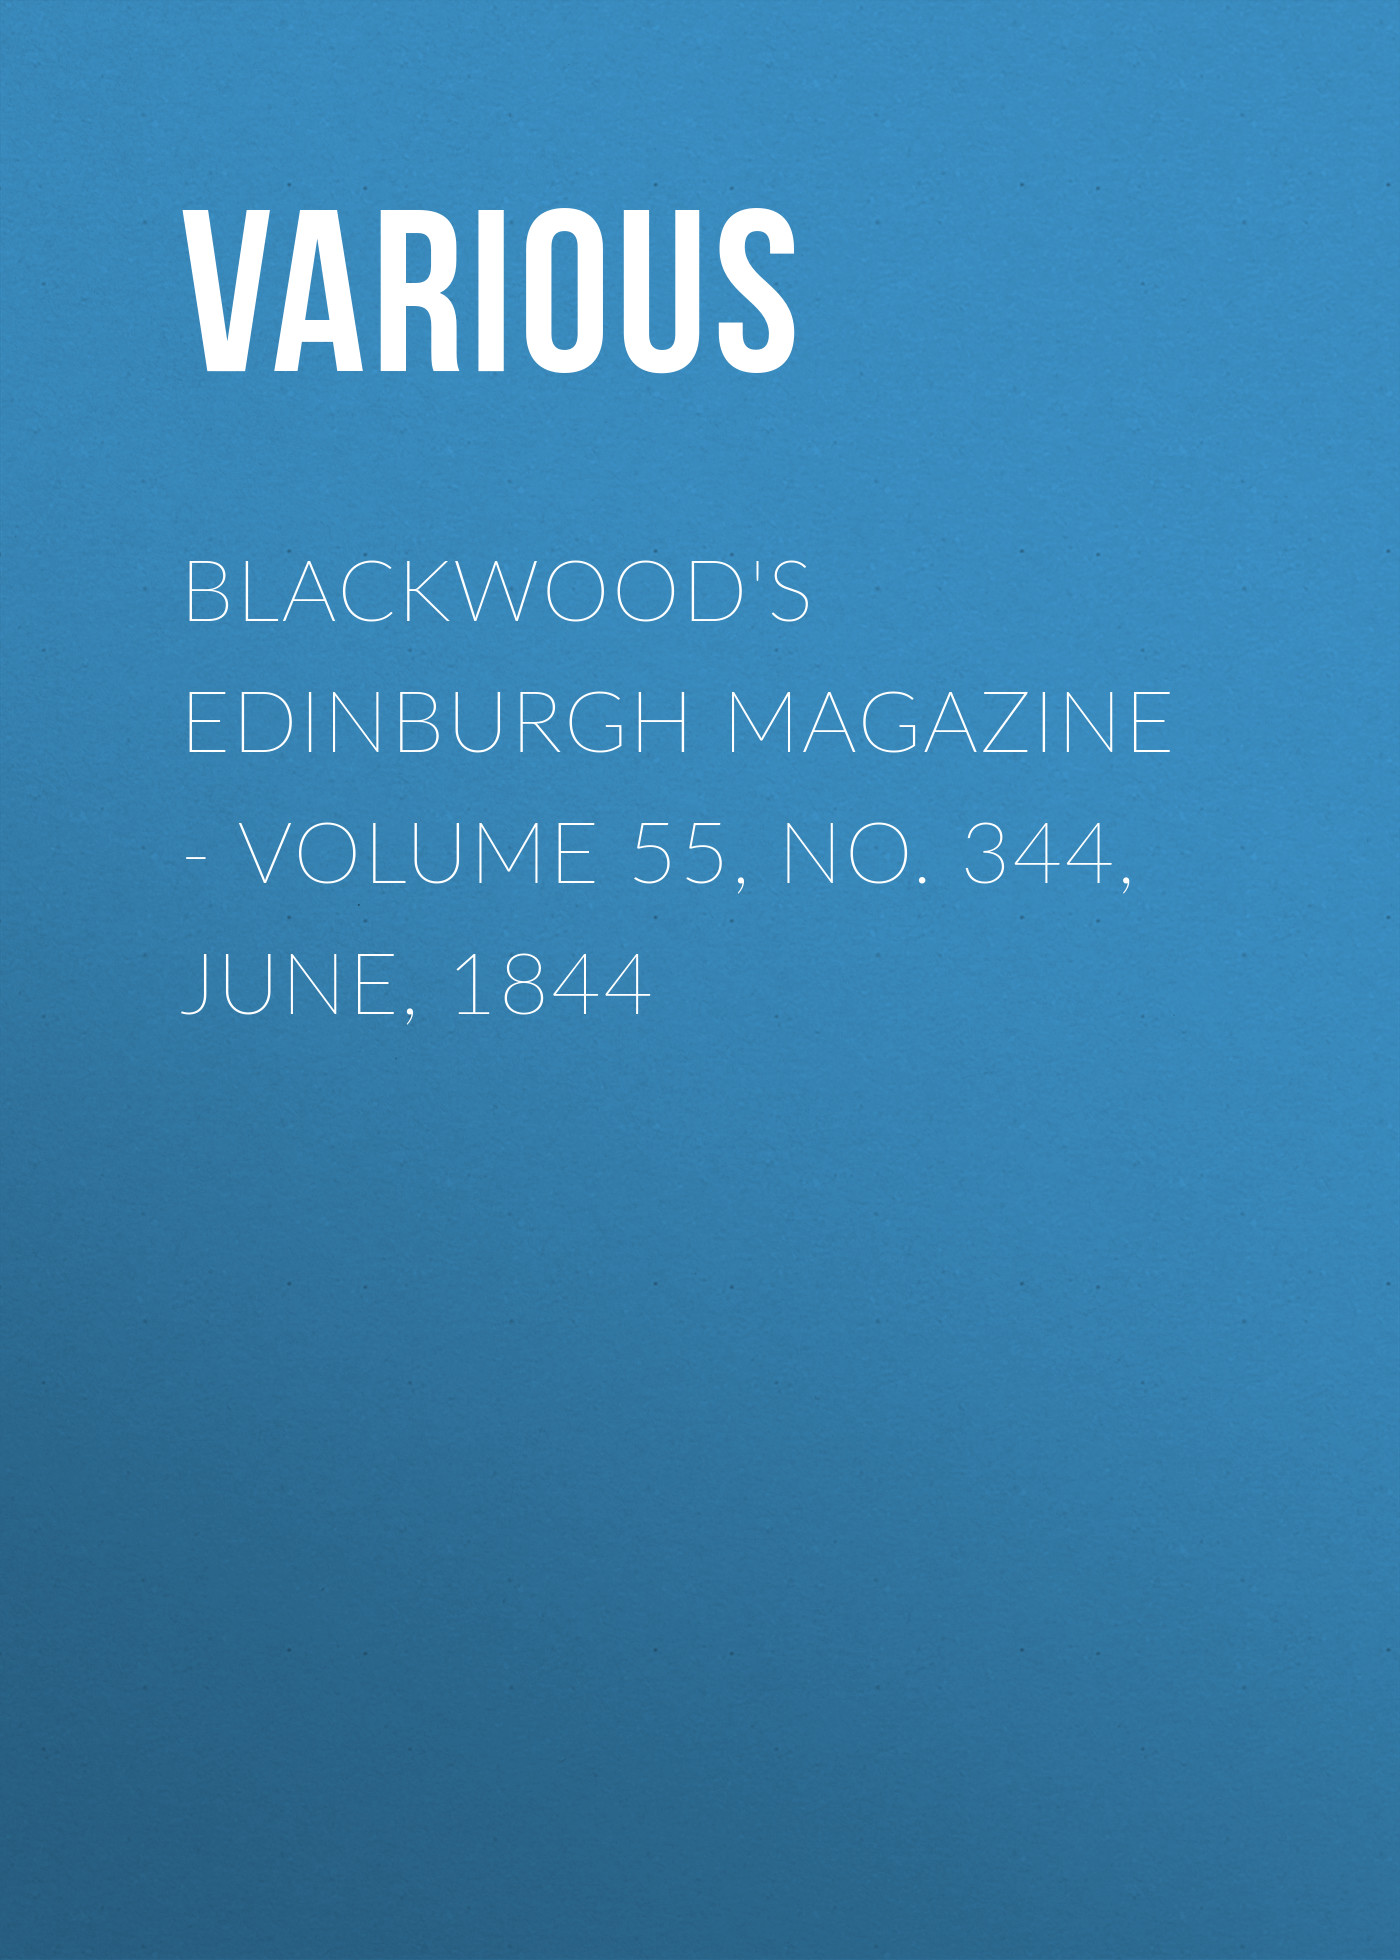 лучшая цена Various Blackwood's Edinburgh Magazine. Volume 55, No. 344, June, 1844